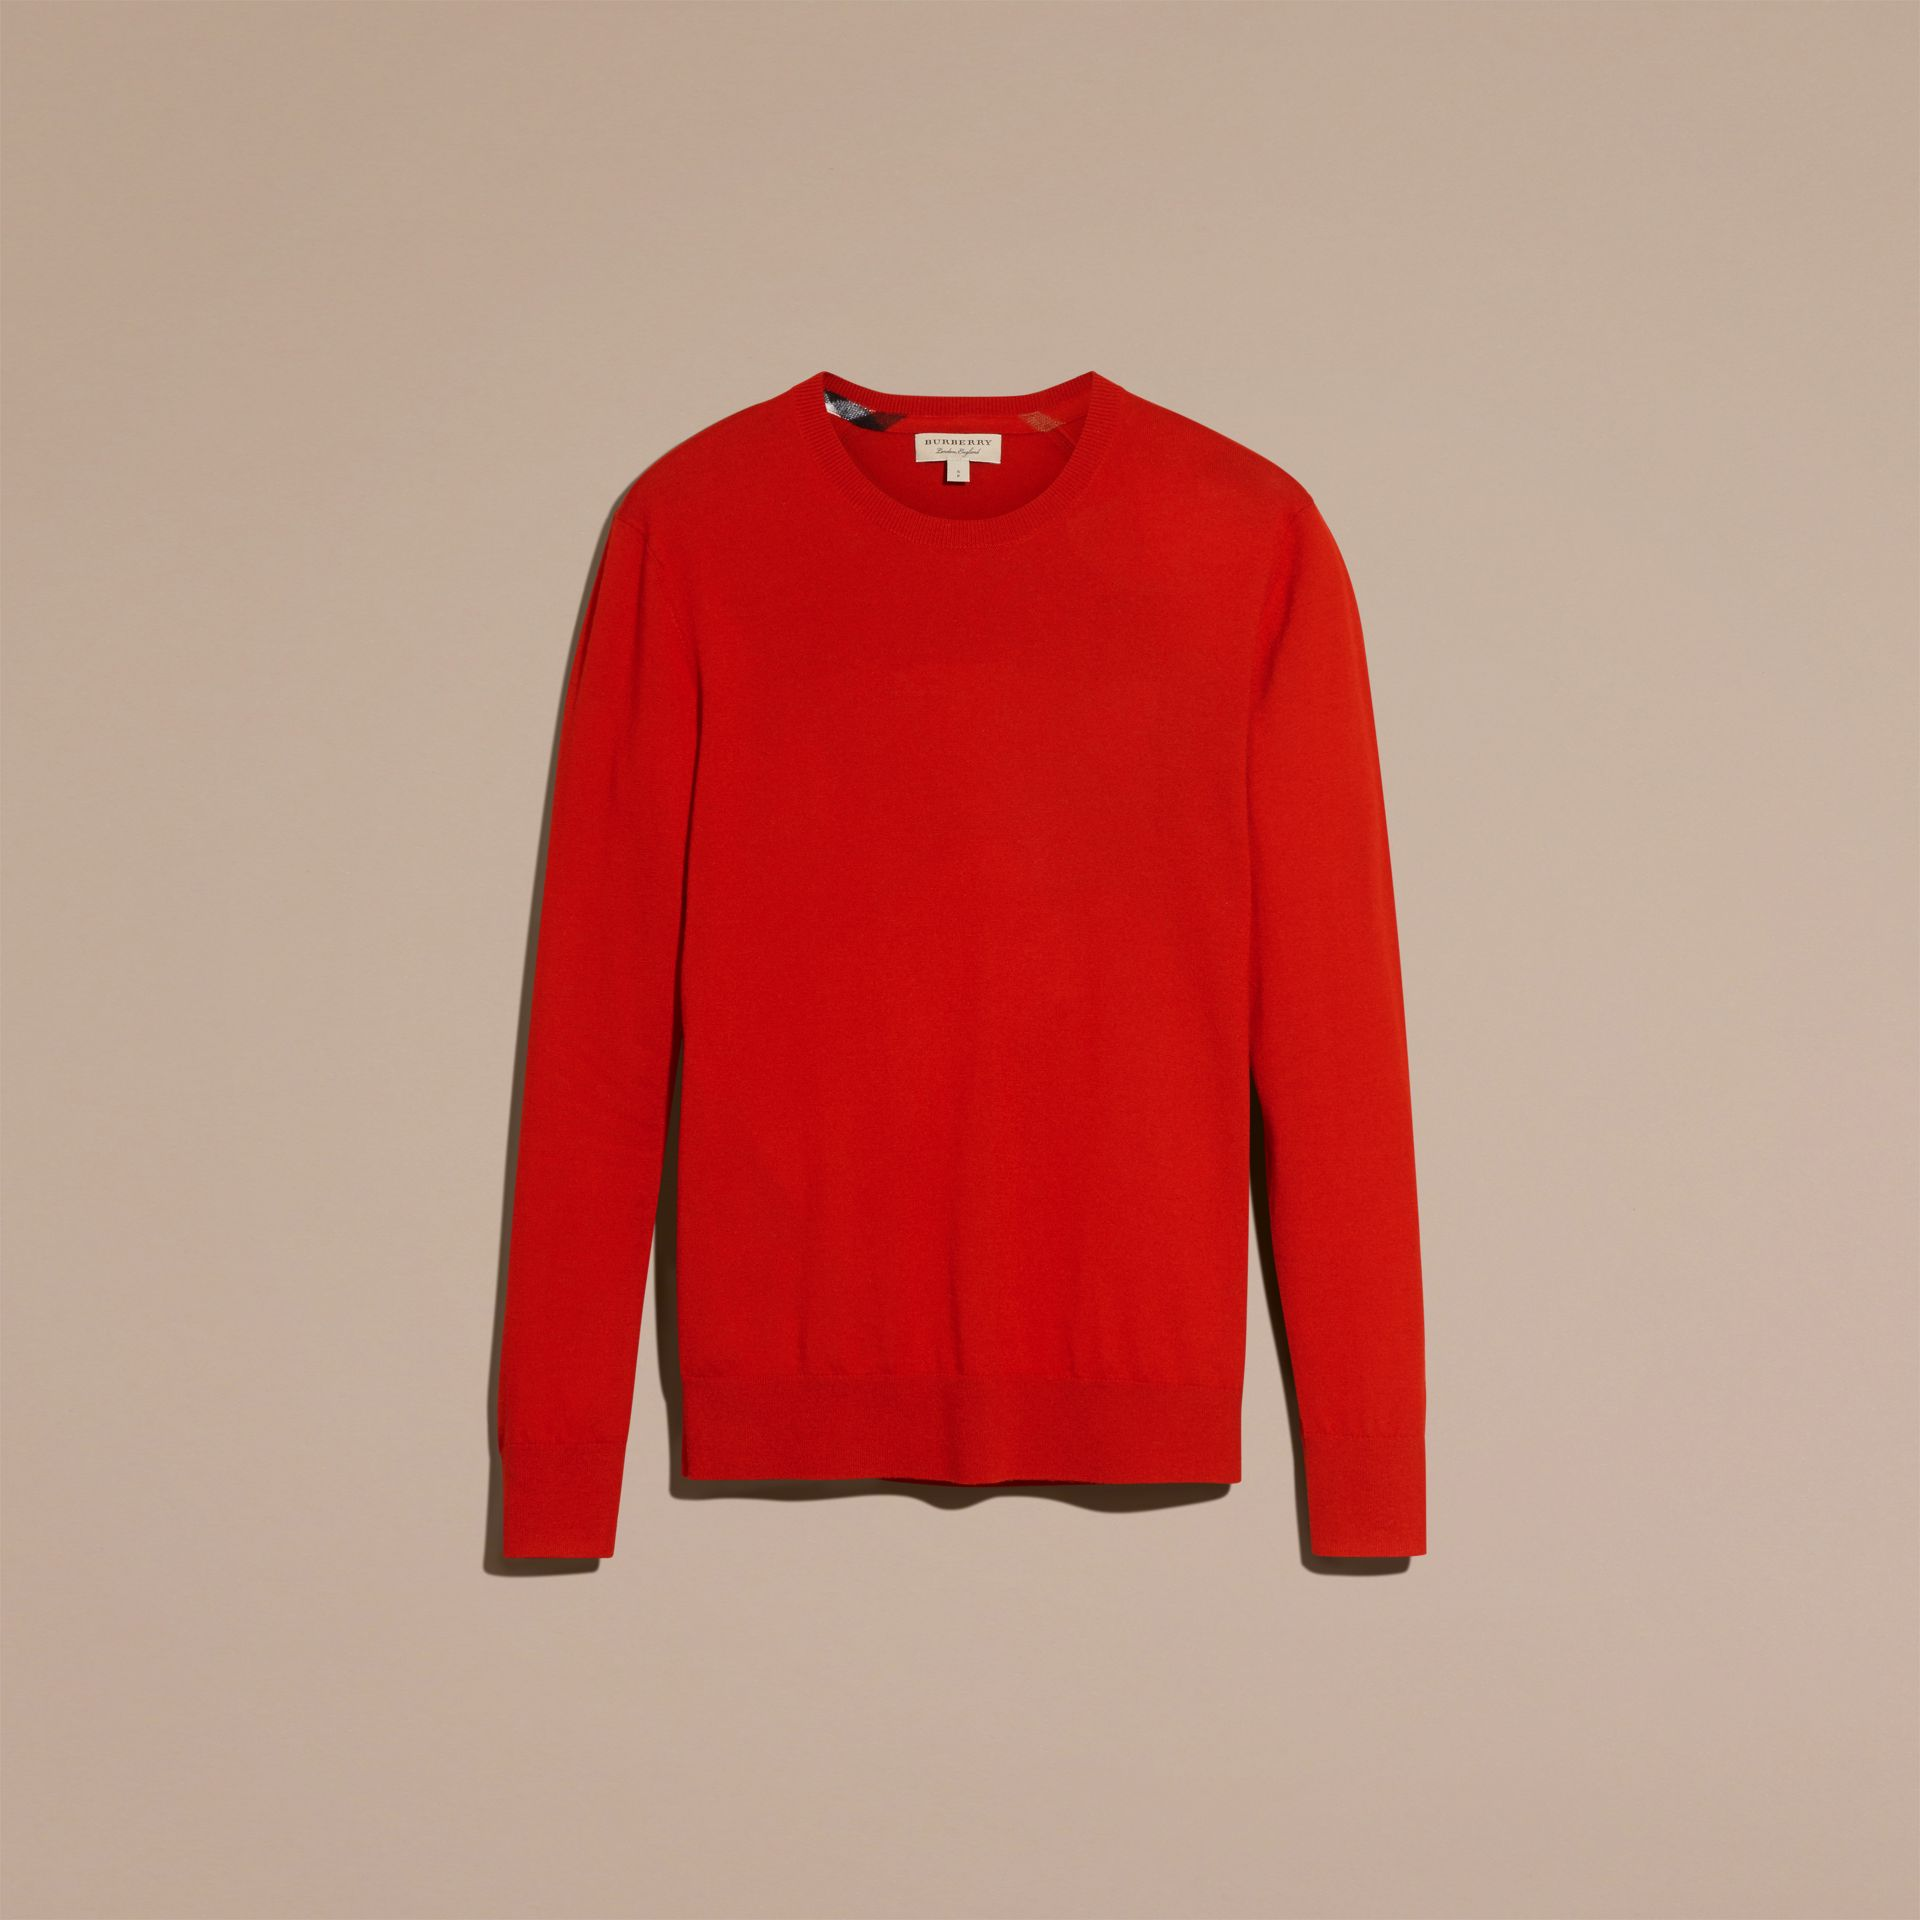 Lightweight Crew Neck Cashmere Sweater with Check Trim Parade Red - gallery image 4